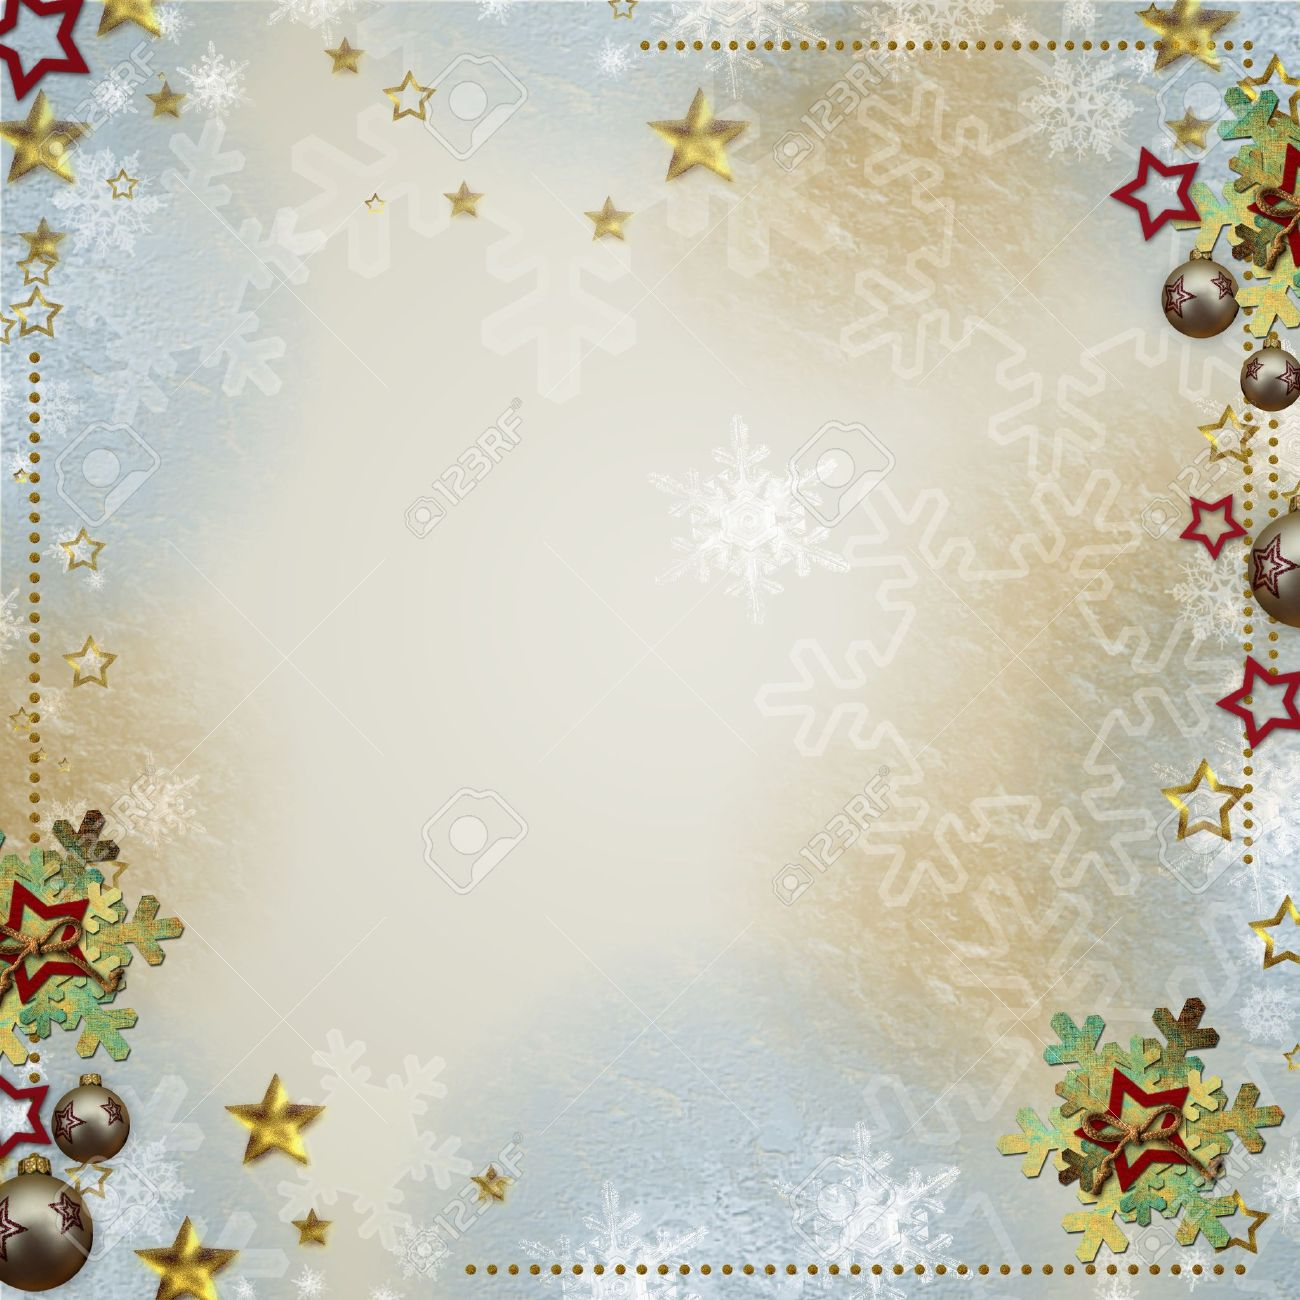 Multicolored backdrop for greetings or invitations with bauble, snowflakes and stars Stock Photo - 14935239